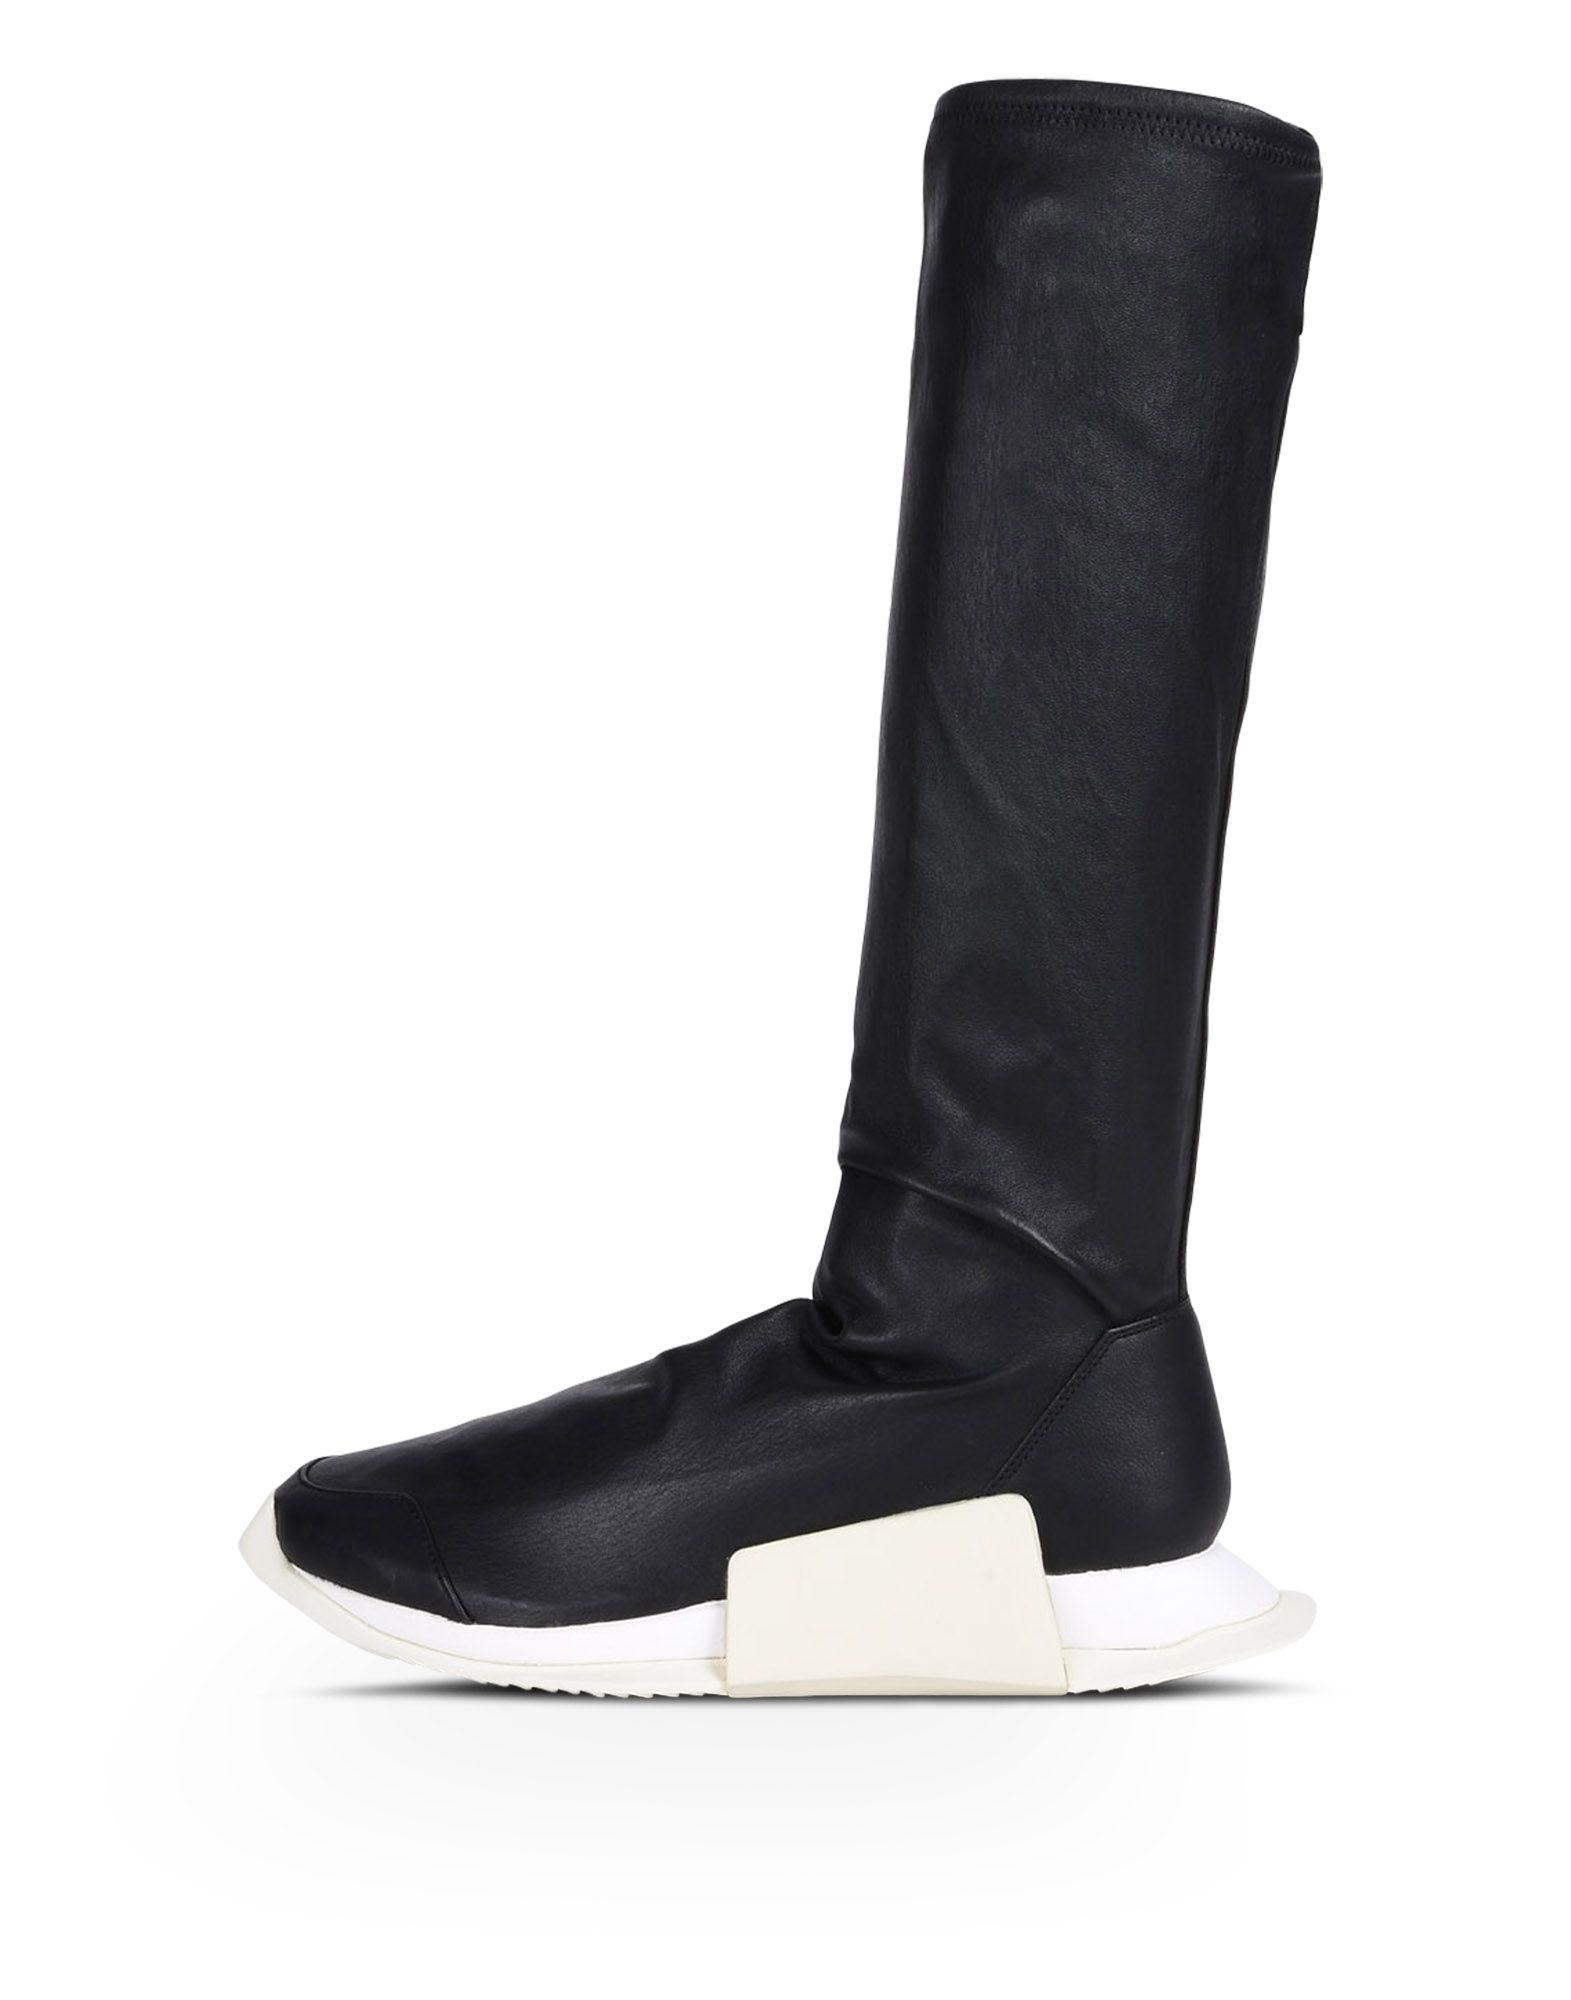 Level Runner high sneakers - Black Rick Owens x adidas